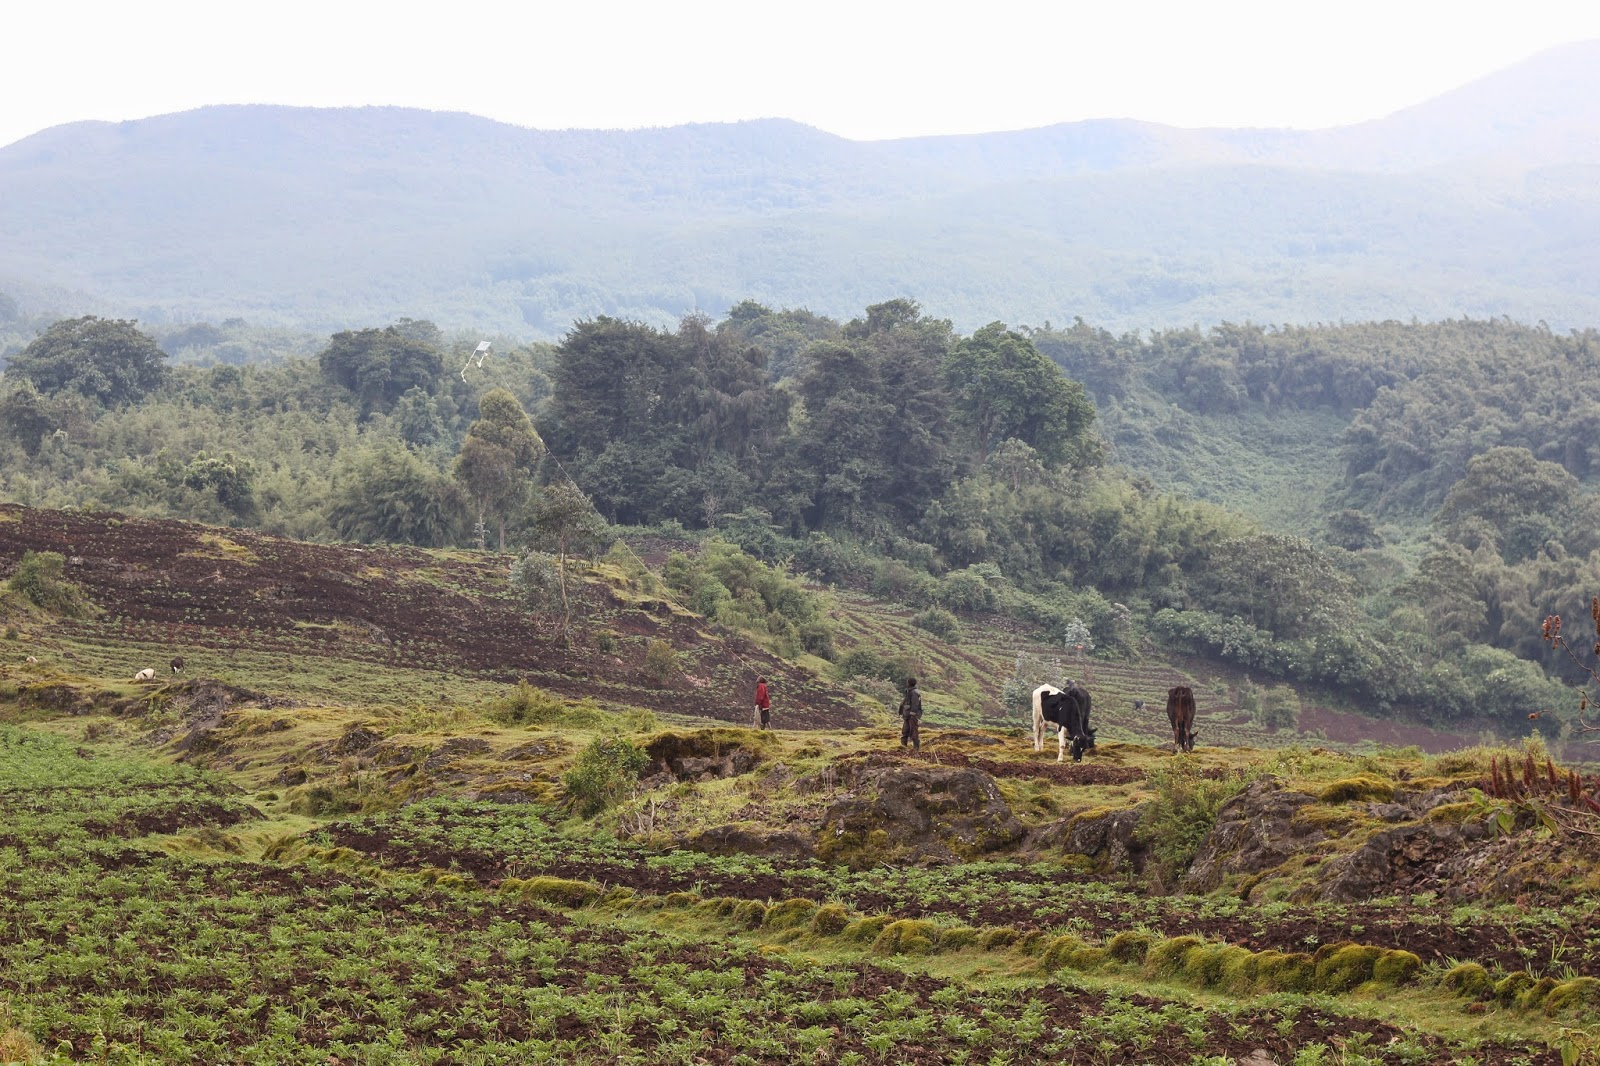 Rwandan countryside and landscape